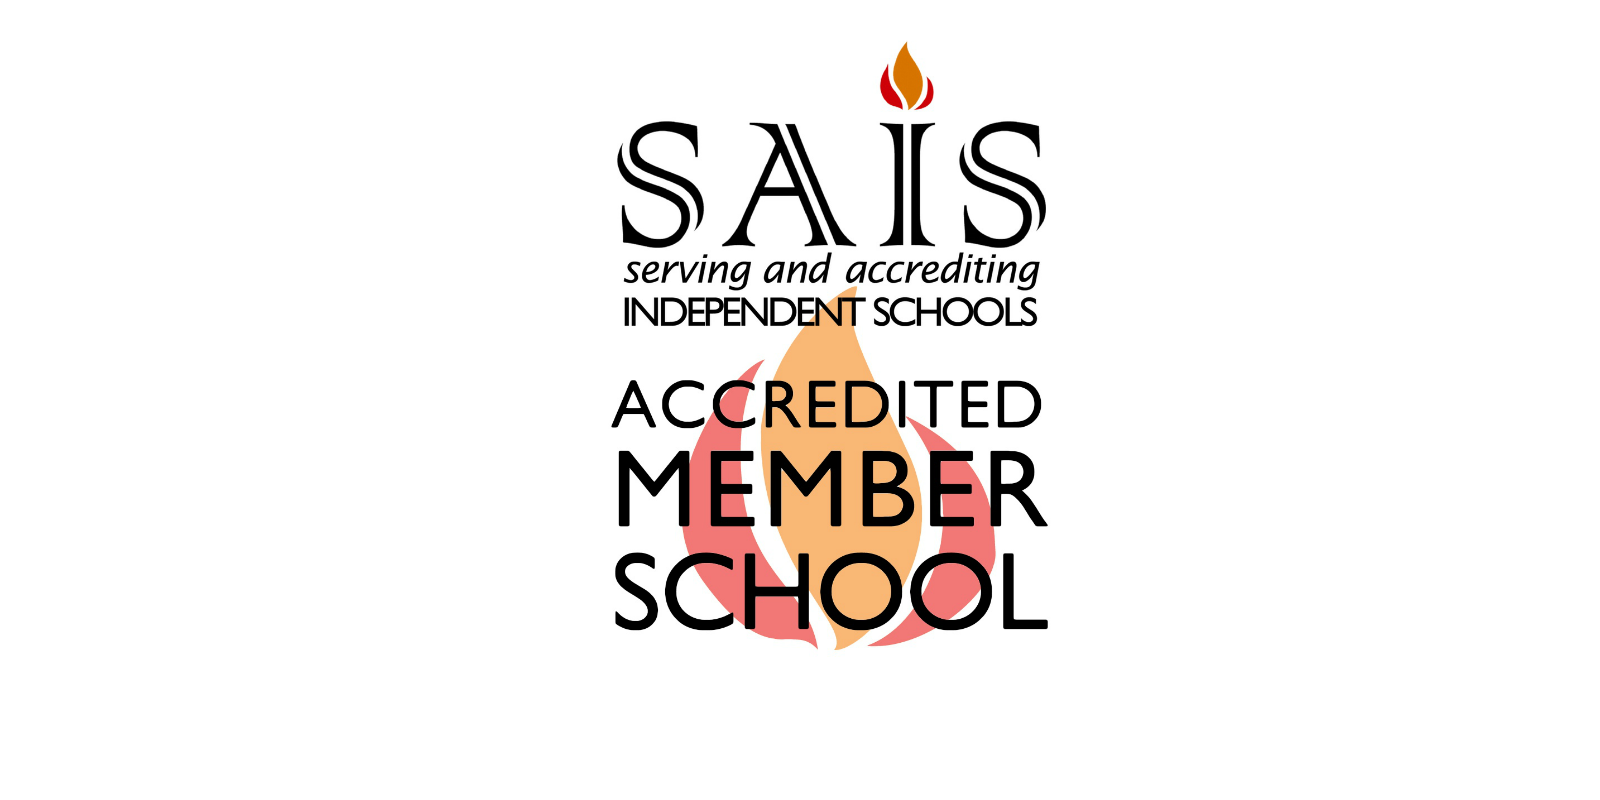 St. Luke School Becomes an Accredited Member of SAIS